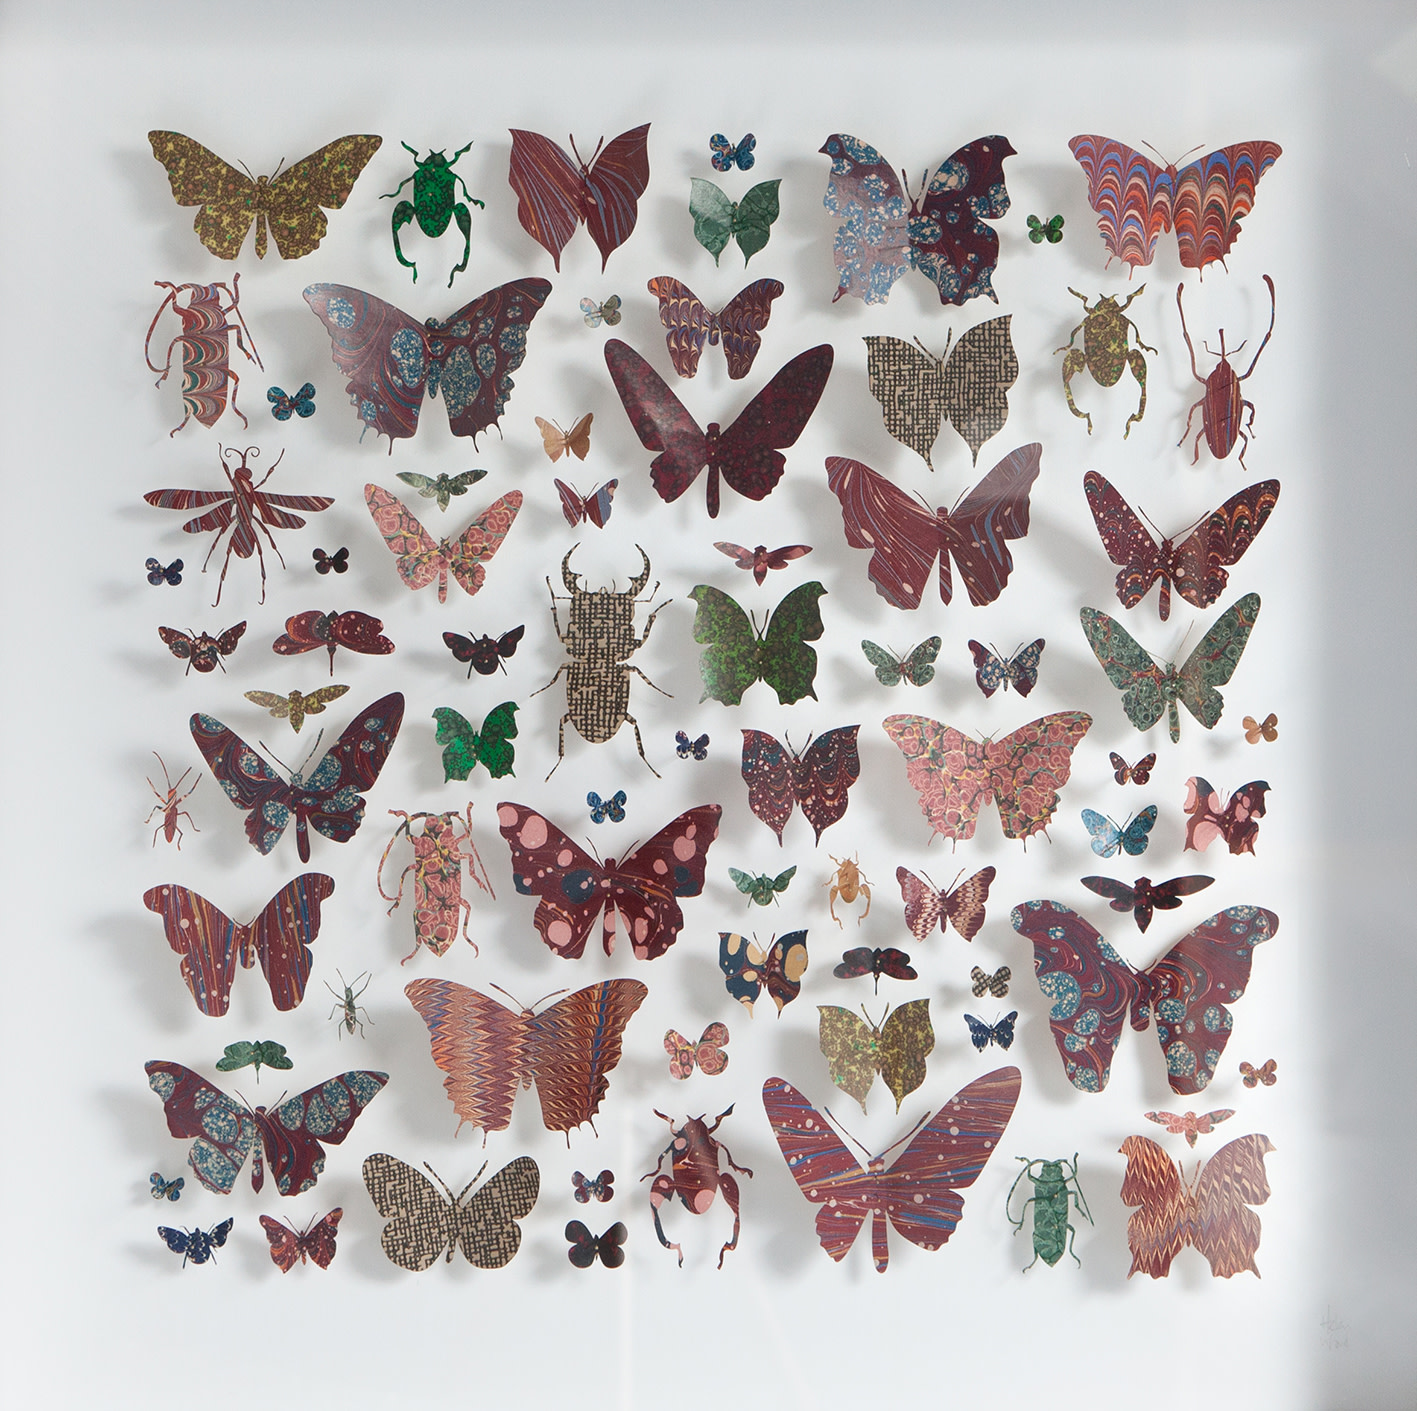 <span class=&#34;link fancybox-details-link&#34;><a href=&#34;/artists/142-helen-ward/works/6230-helen-ward-morpho-square-1-2019/&#34;>View Detail Page</a></span><div class=&#34;artist&#34;><strong>Helen Ward</strong></div> <div class=&#34;title&#34;><em>Morpho Square 1</em>, 2019</div> <div class=&#34;medium&#34;>paper, Victorian hand-marbled papers, gold leaf, enamel pins</div> <div class=&#34;dimensions&#34;>60 x 60 cm</div><div class=&#34;price&#34;>£1,280.00</div><div class=&#34;copyright_line&#34;>Own Art: £ 128 x 10 Monthly 0% APR Representative Payments</div>